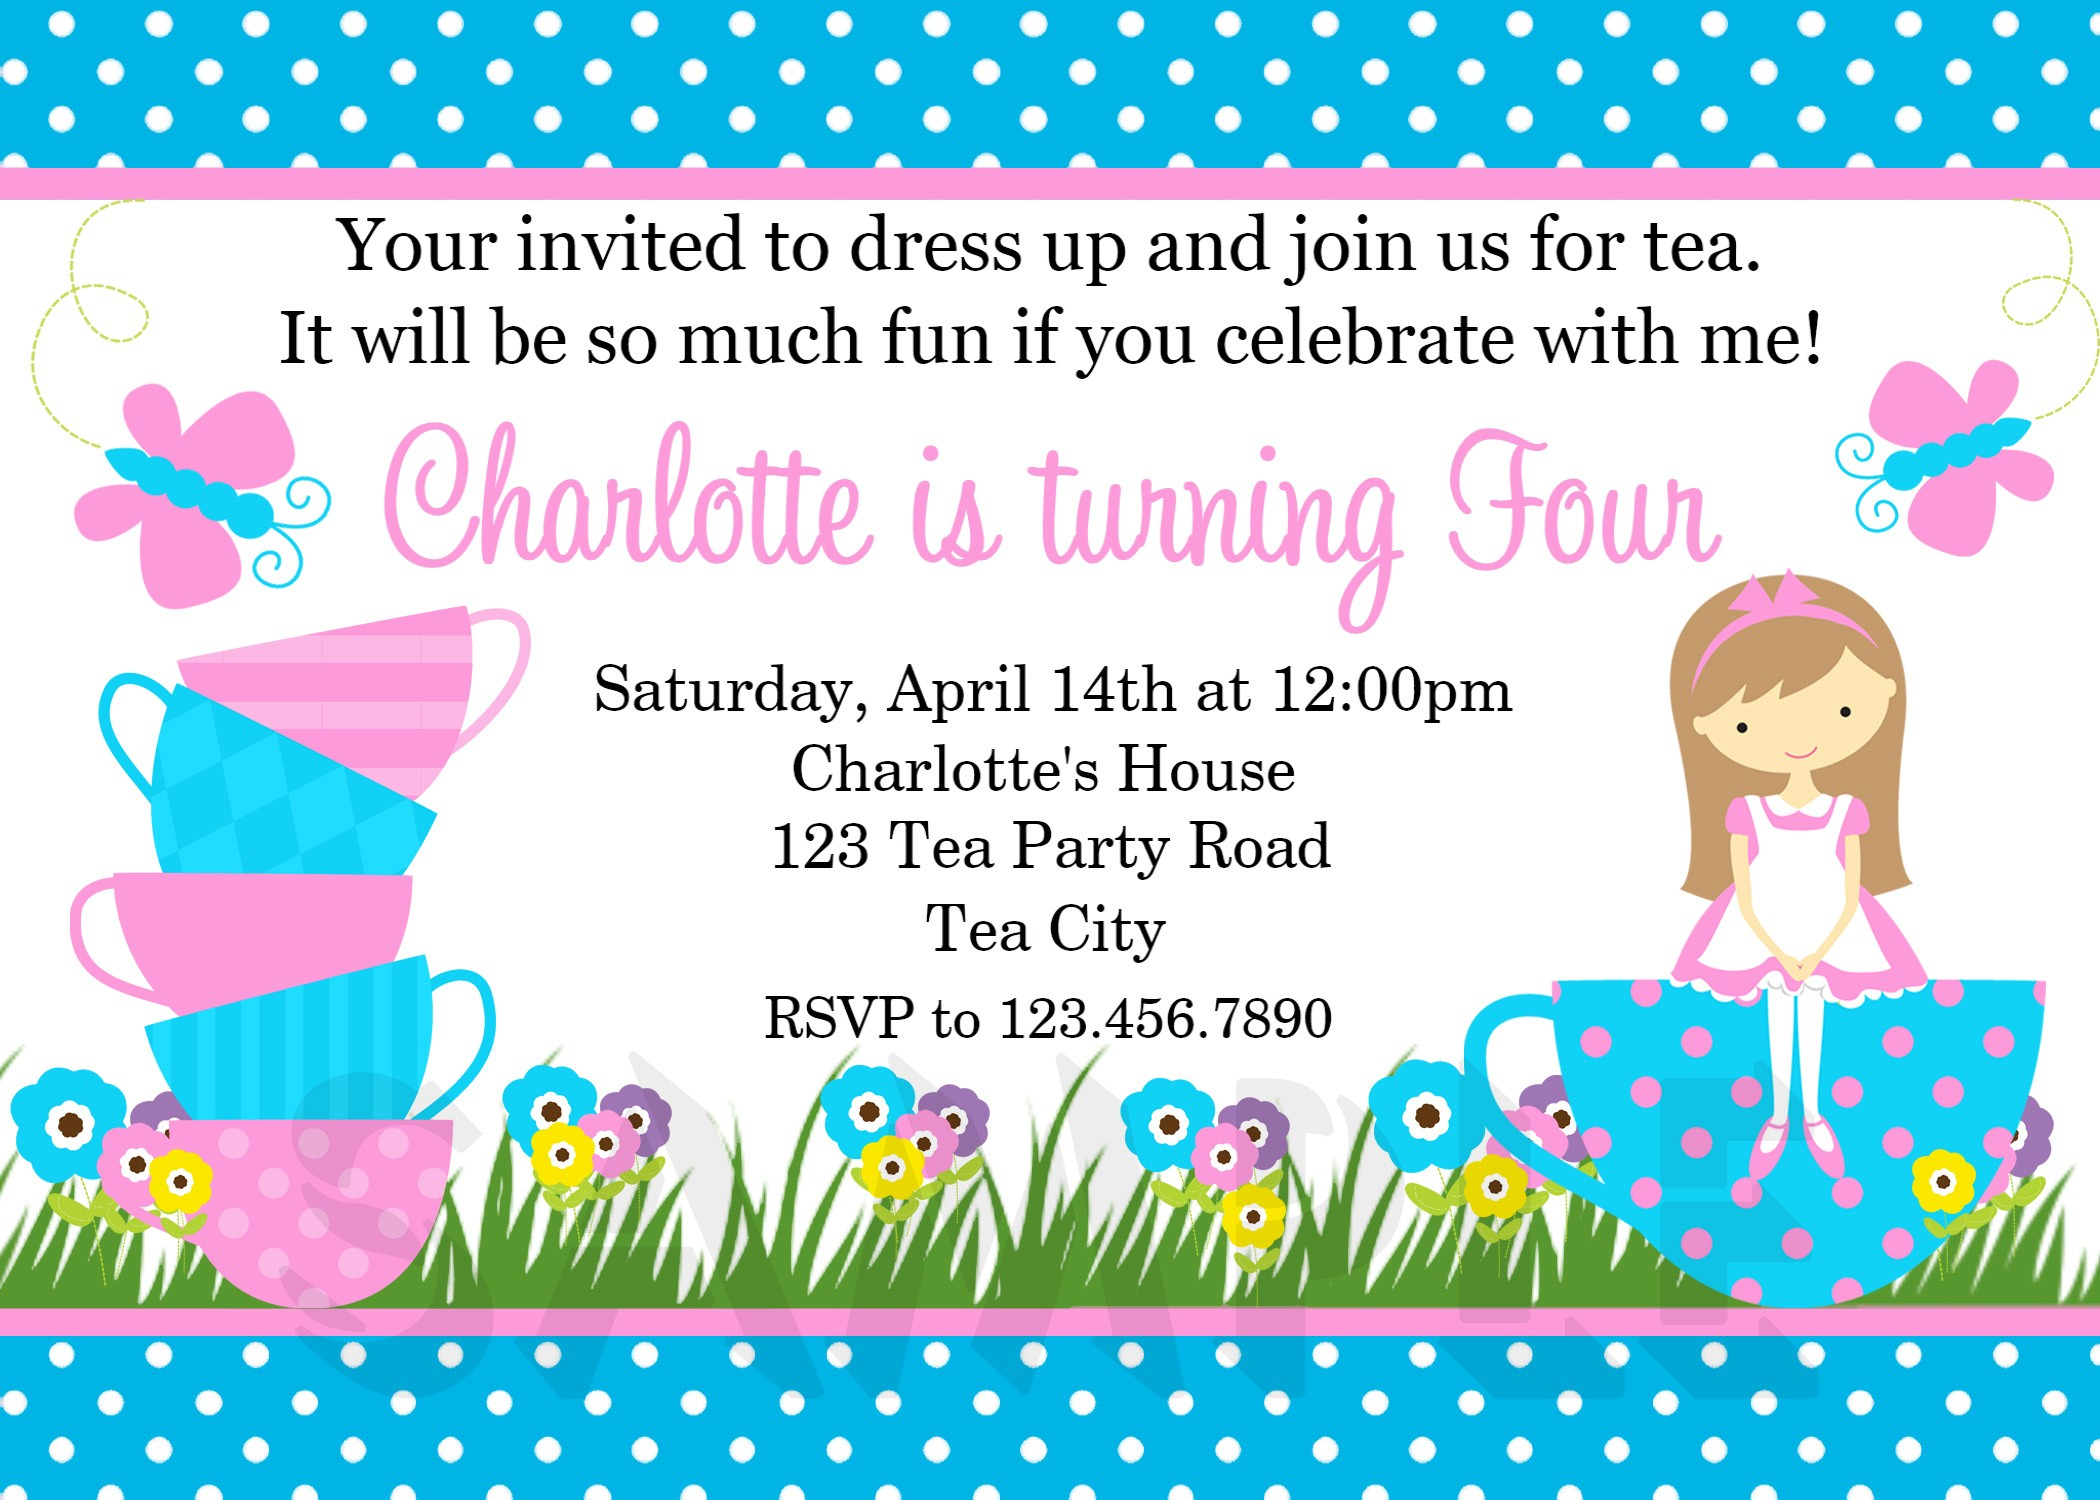 tea party birthday invitation template ; invitation-template-garden-party-fresh-tea-party-birthday-invitations-tea-party-birthday-invitations-for-of-invitation-template-garden-party